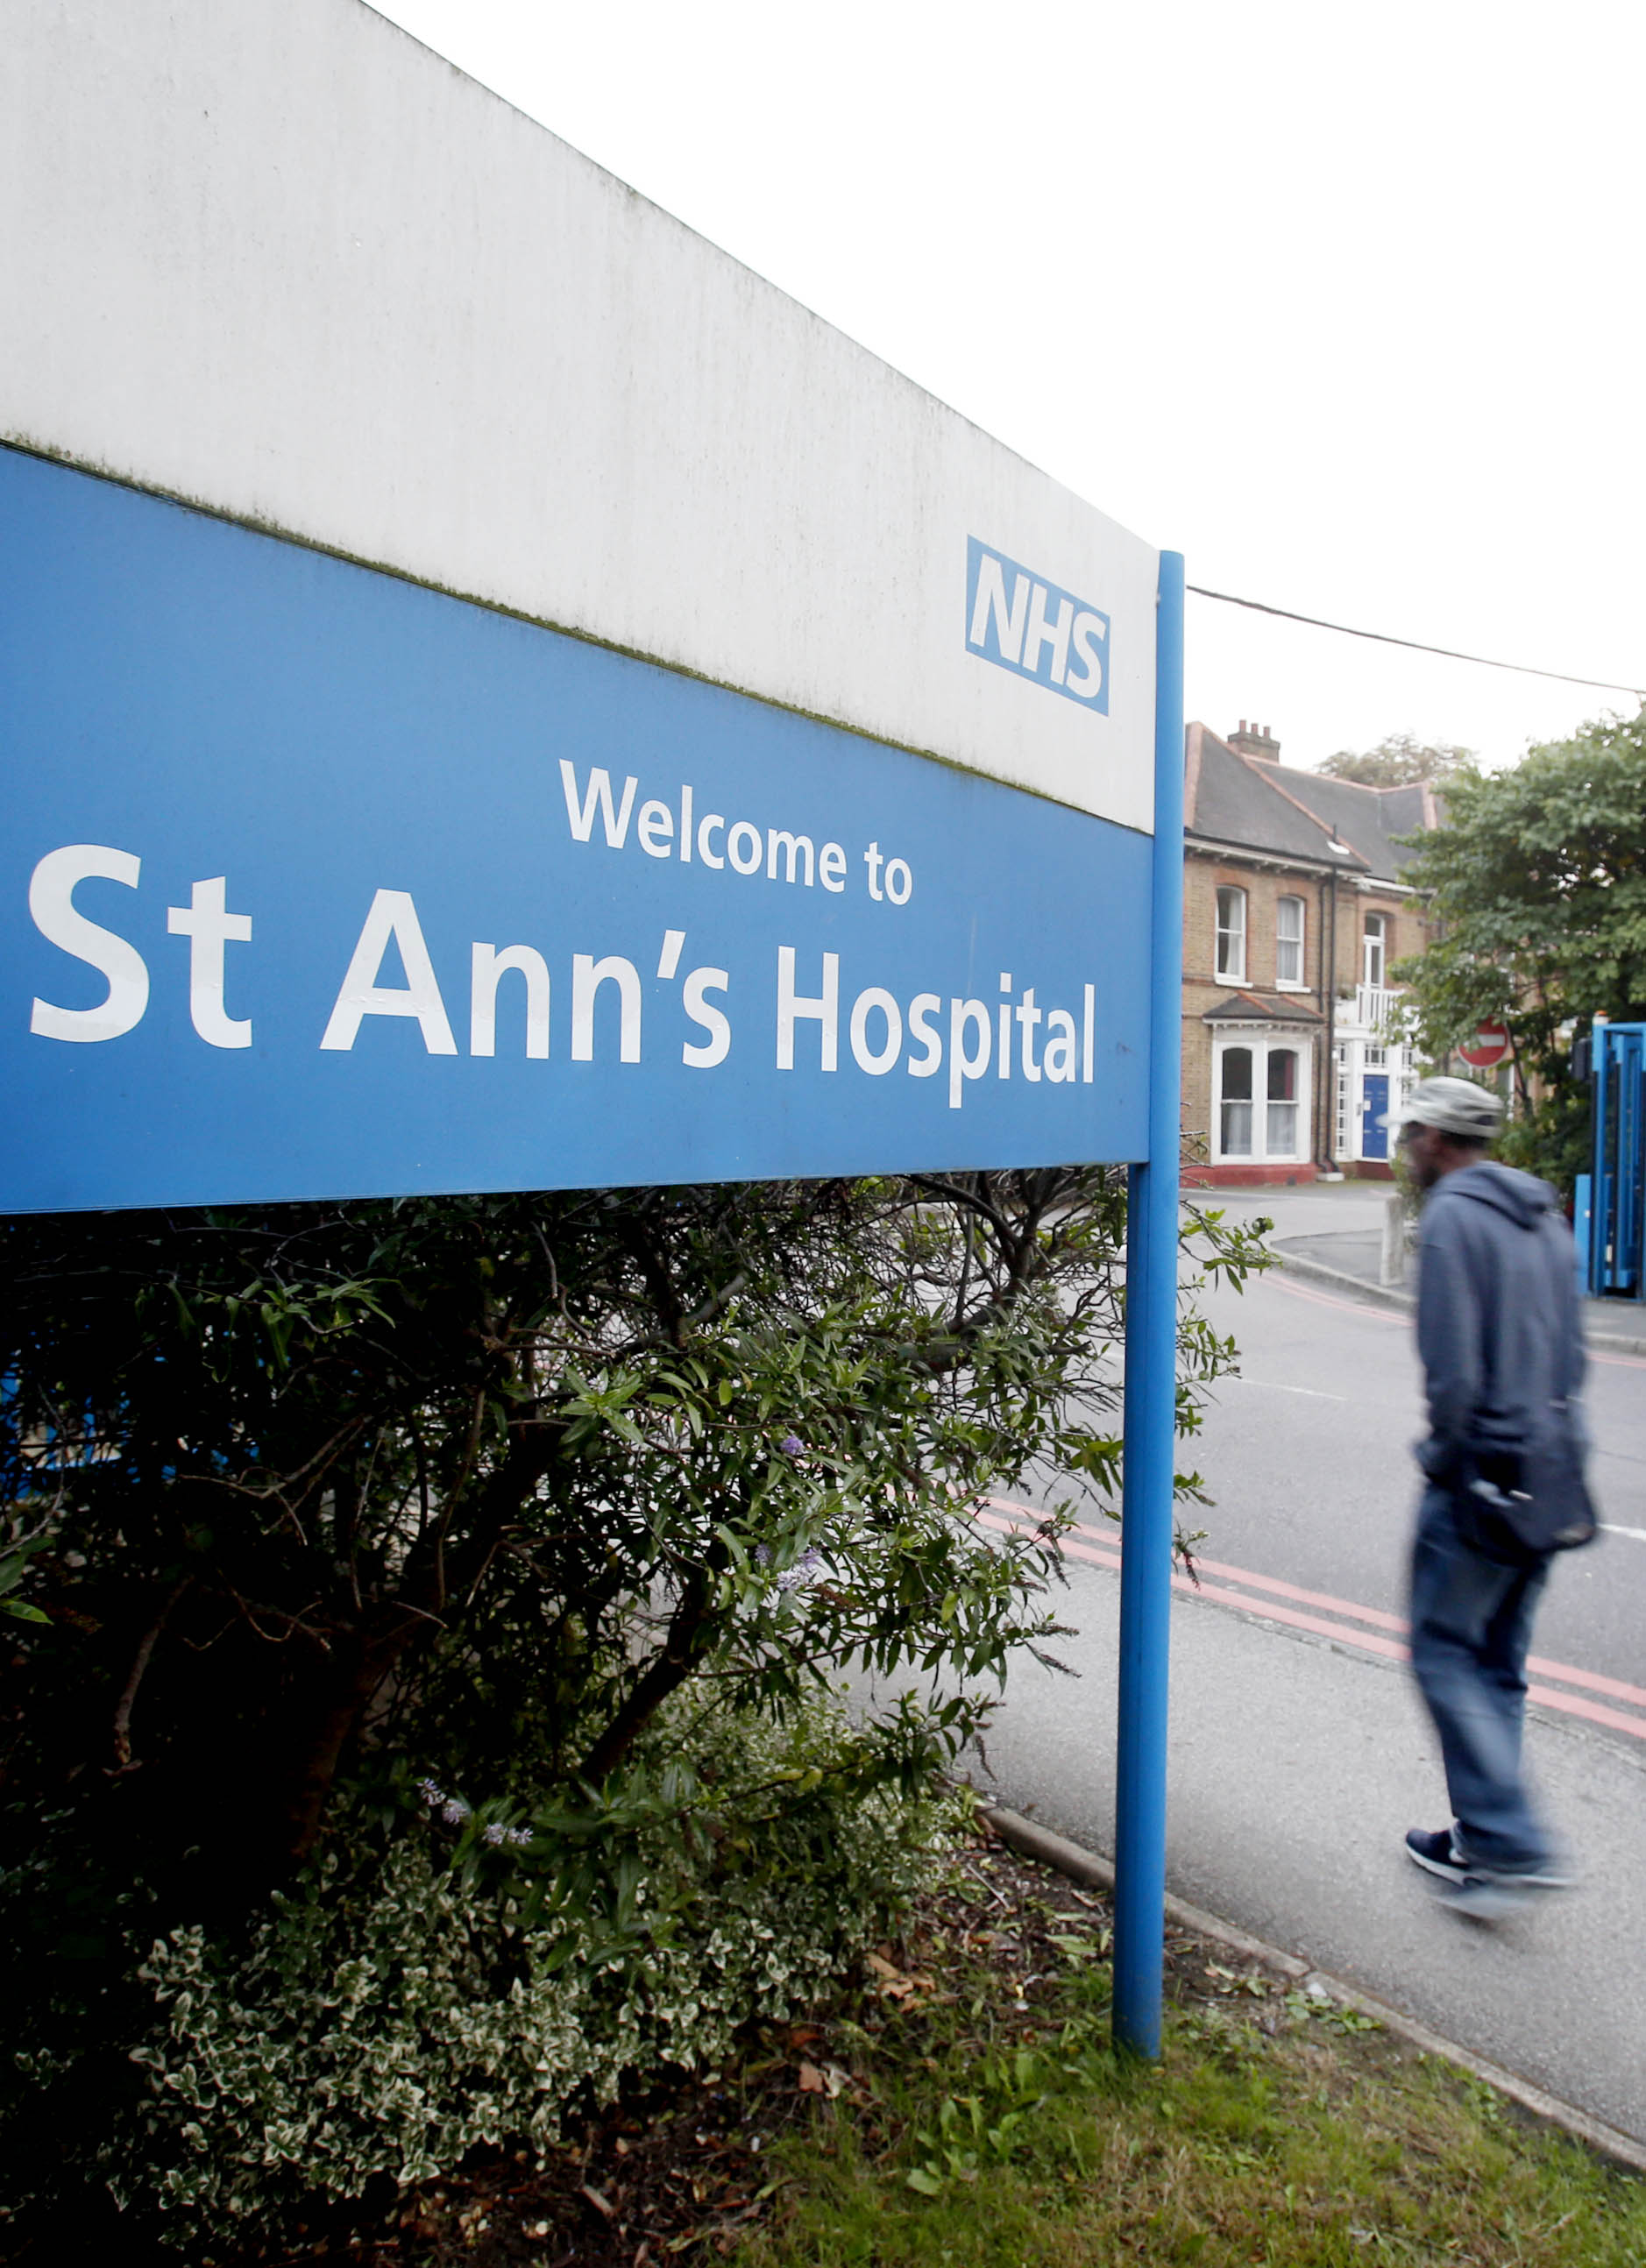 Up to 470 flats and houses will be built on the St Ann's Hospital site